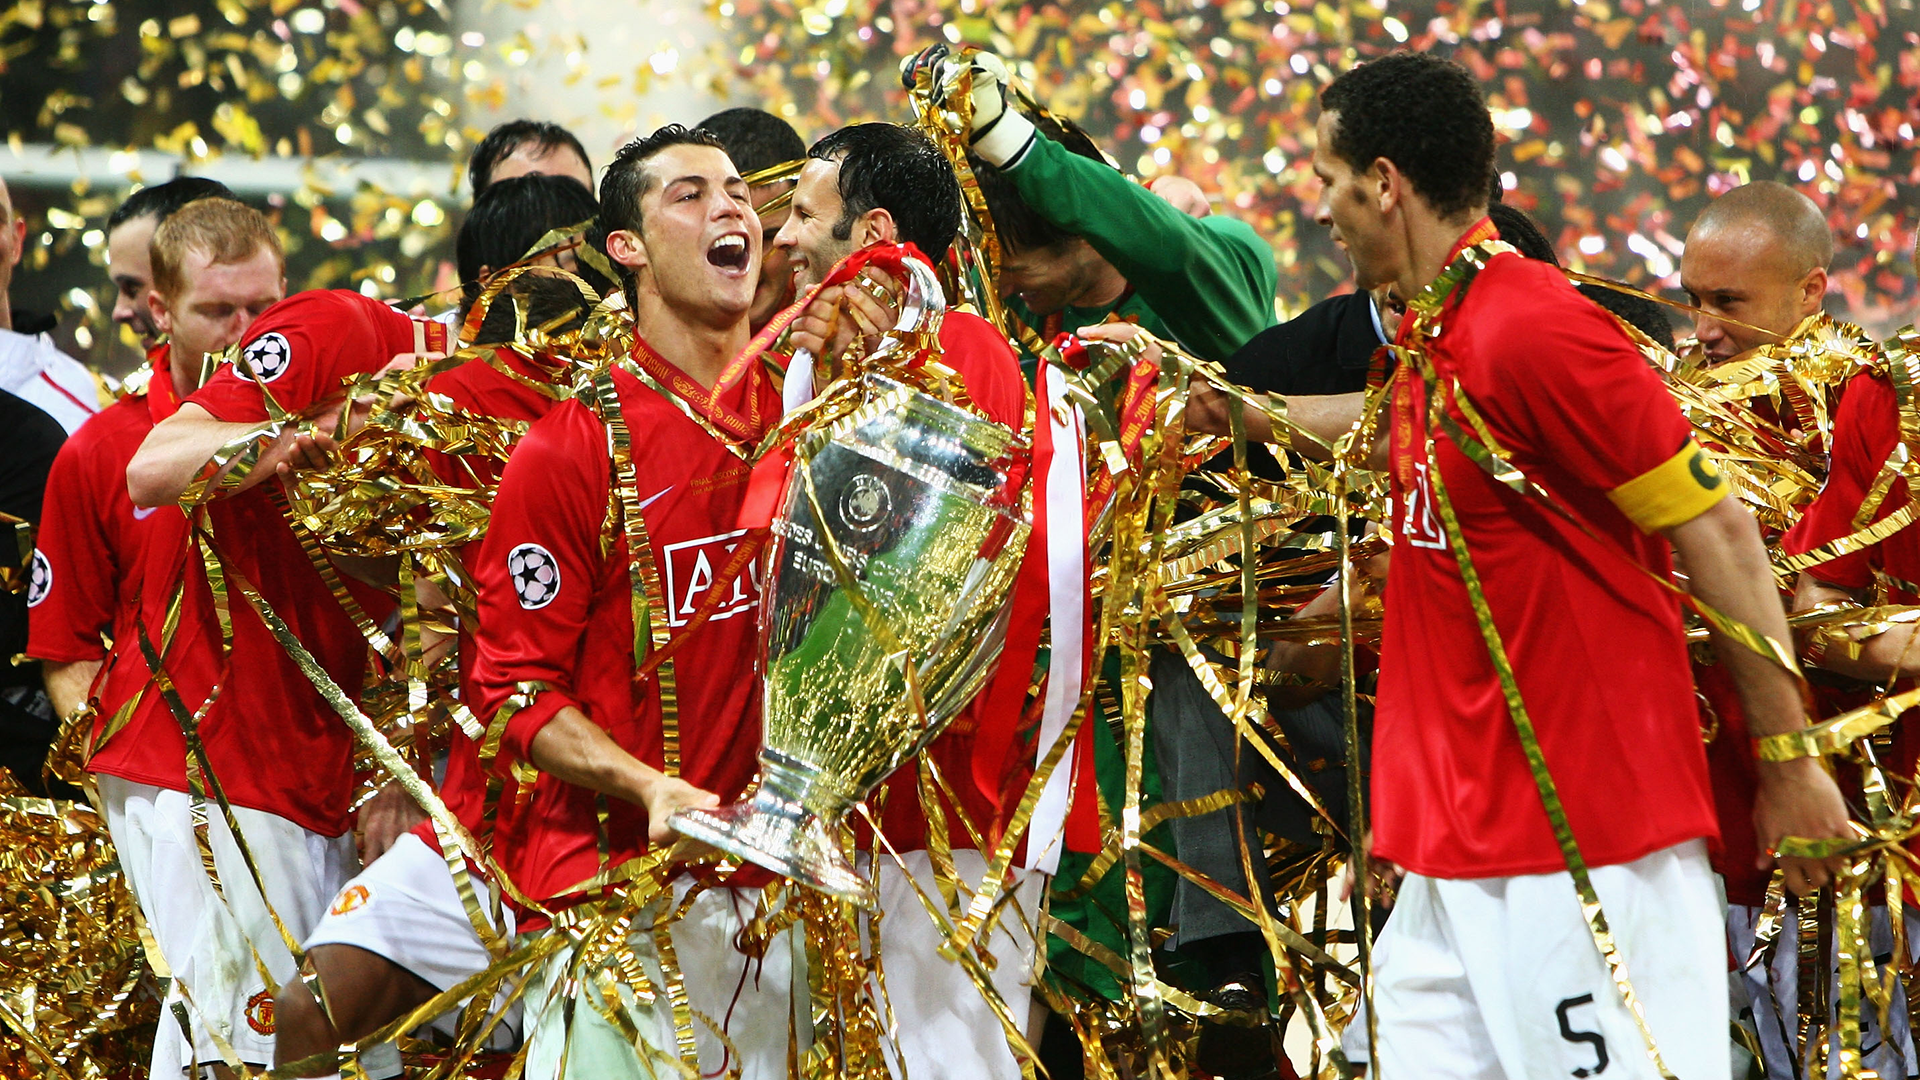 Manchester United S History In The Champions League Titles Finals Record In Europe Goal Com